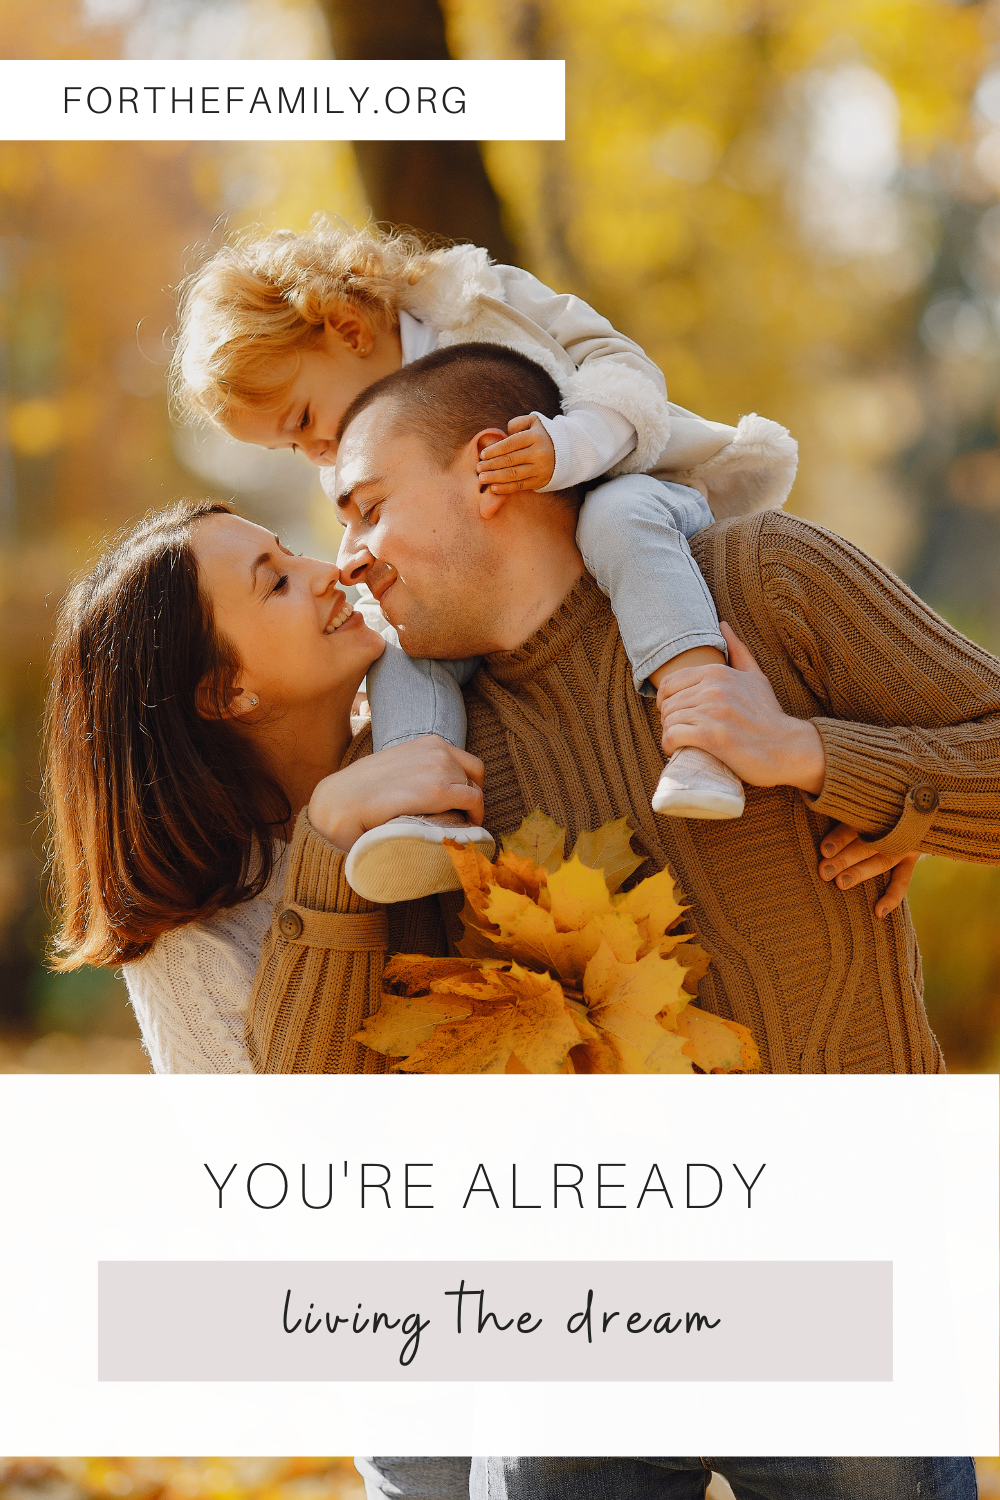 family in fall stock image. You're already living the dream. forthefamily.org